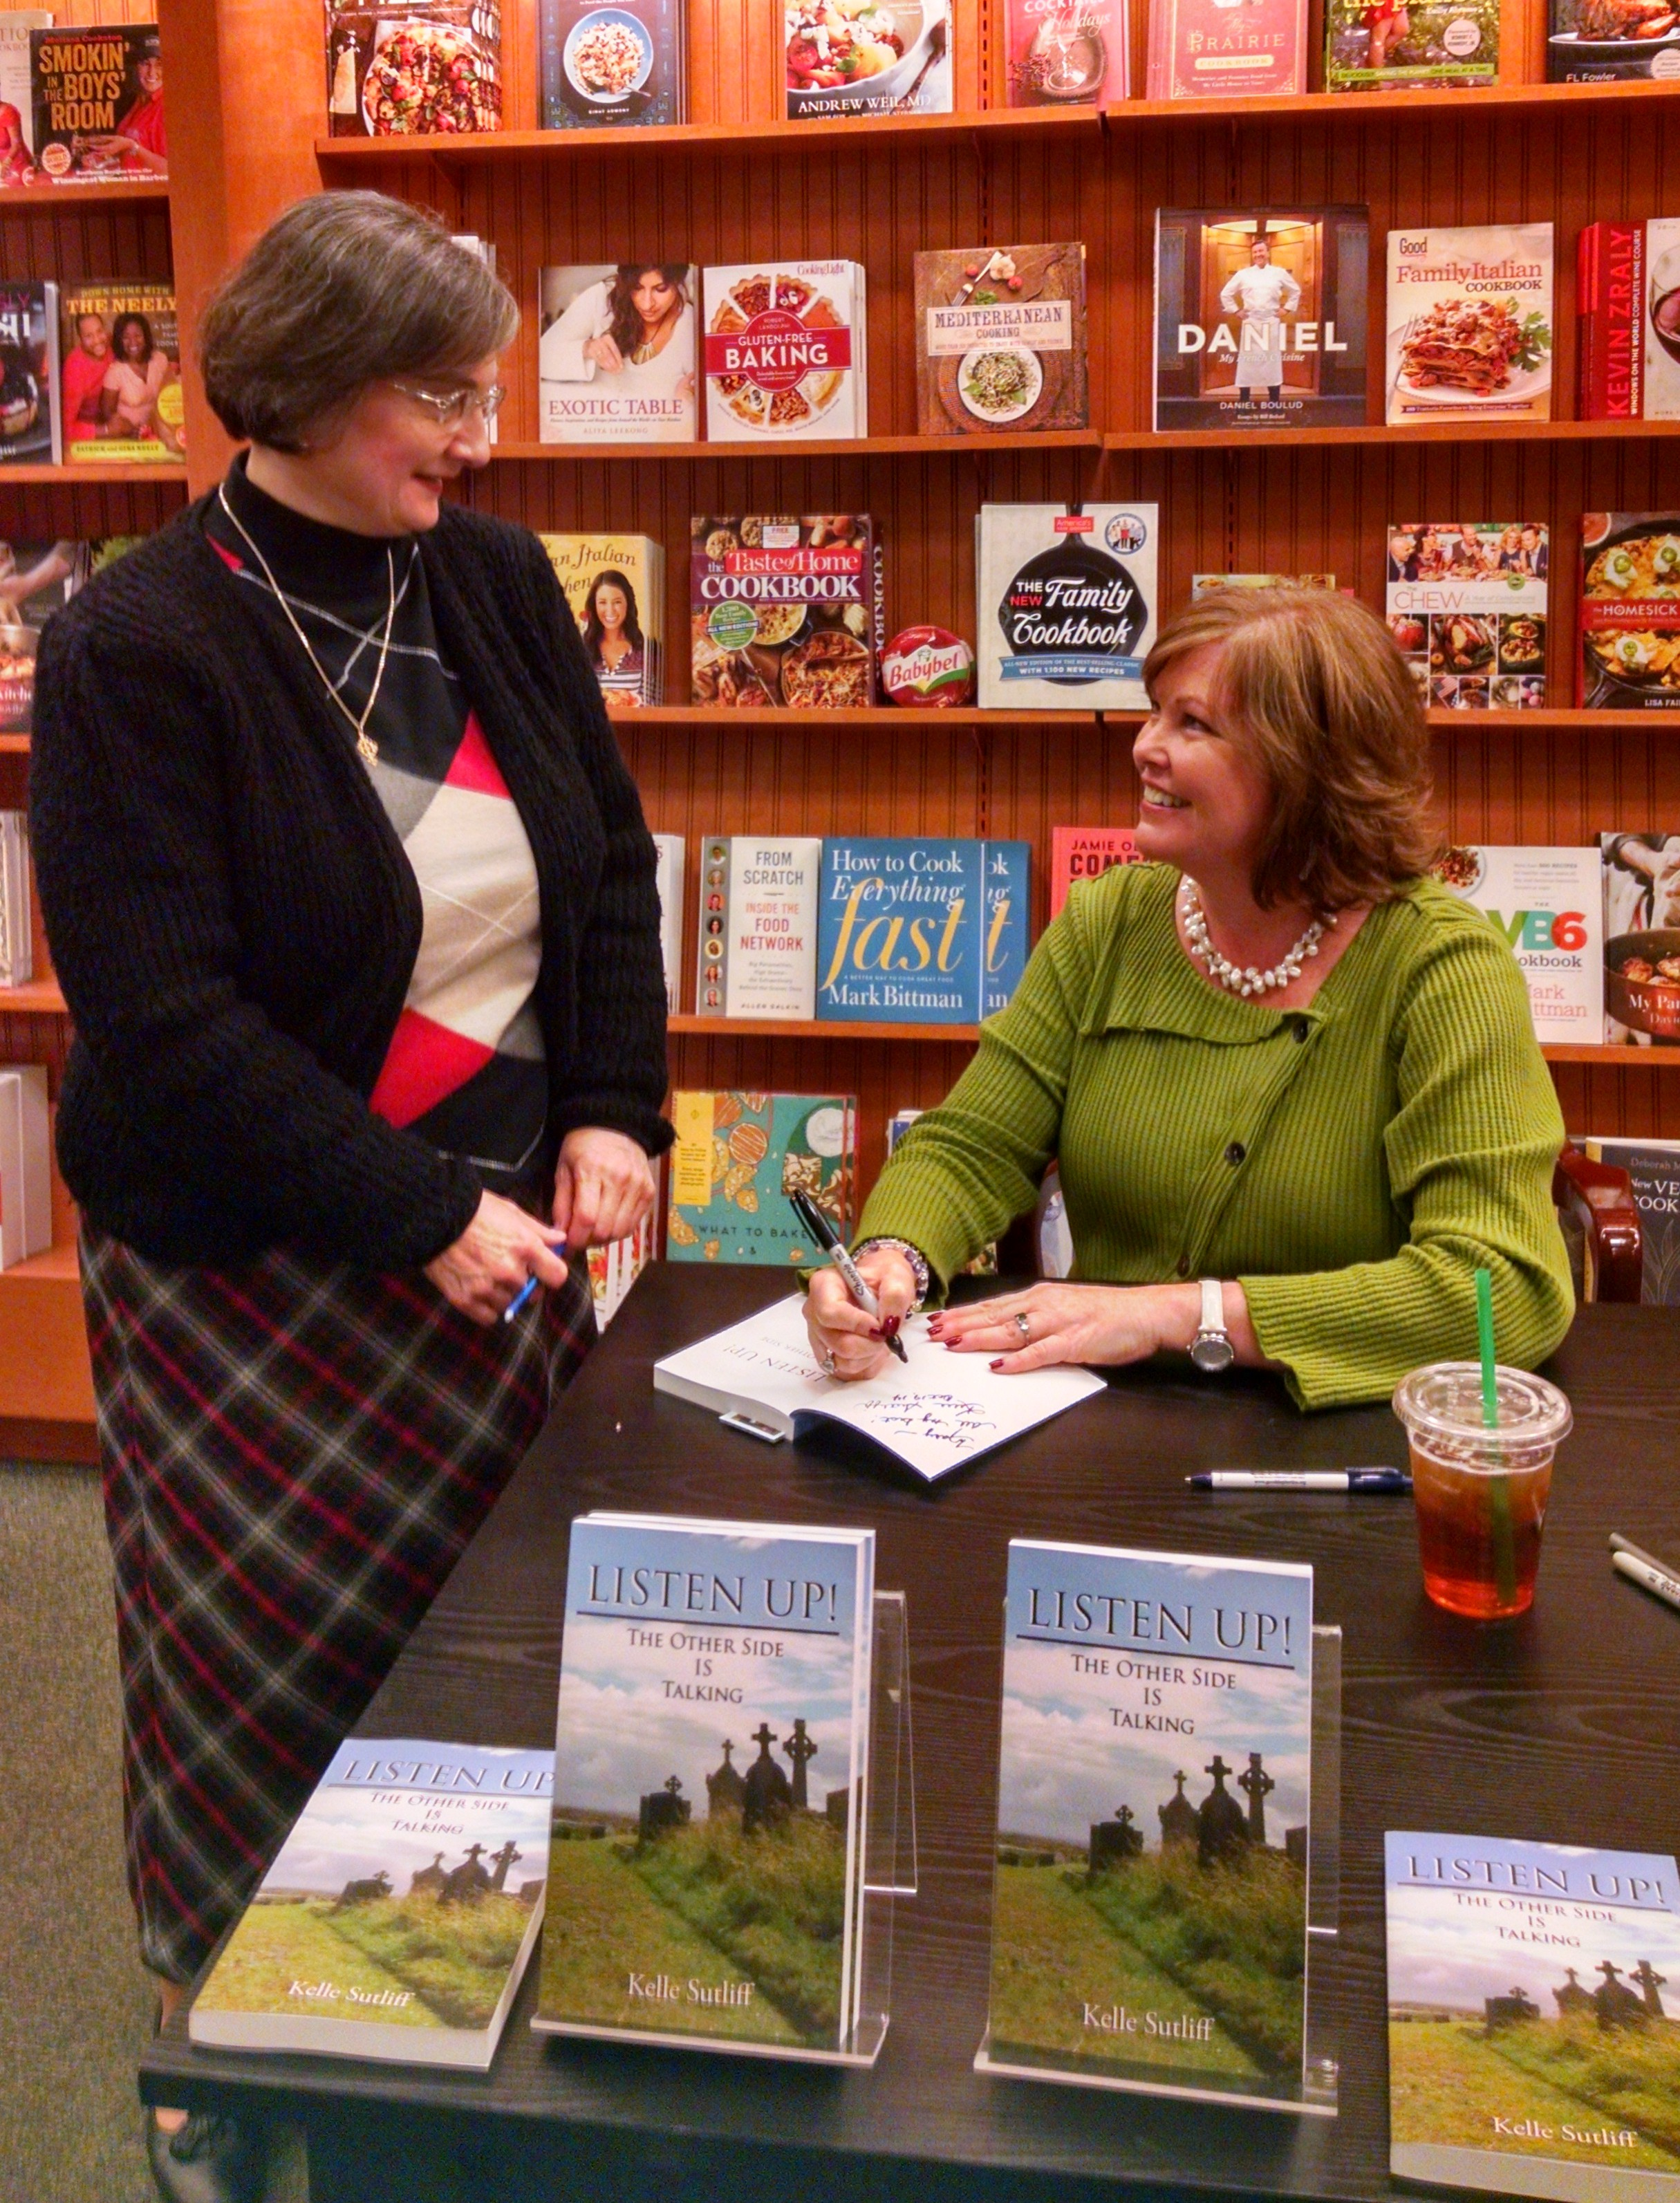 Kelle Sutliff  Book Signing at Barnes & Noble